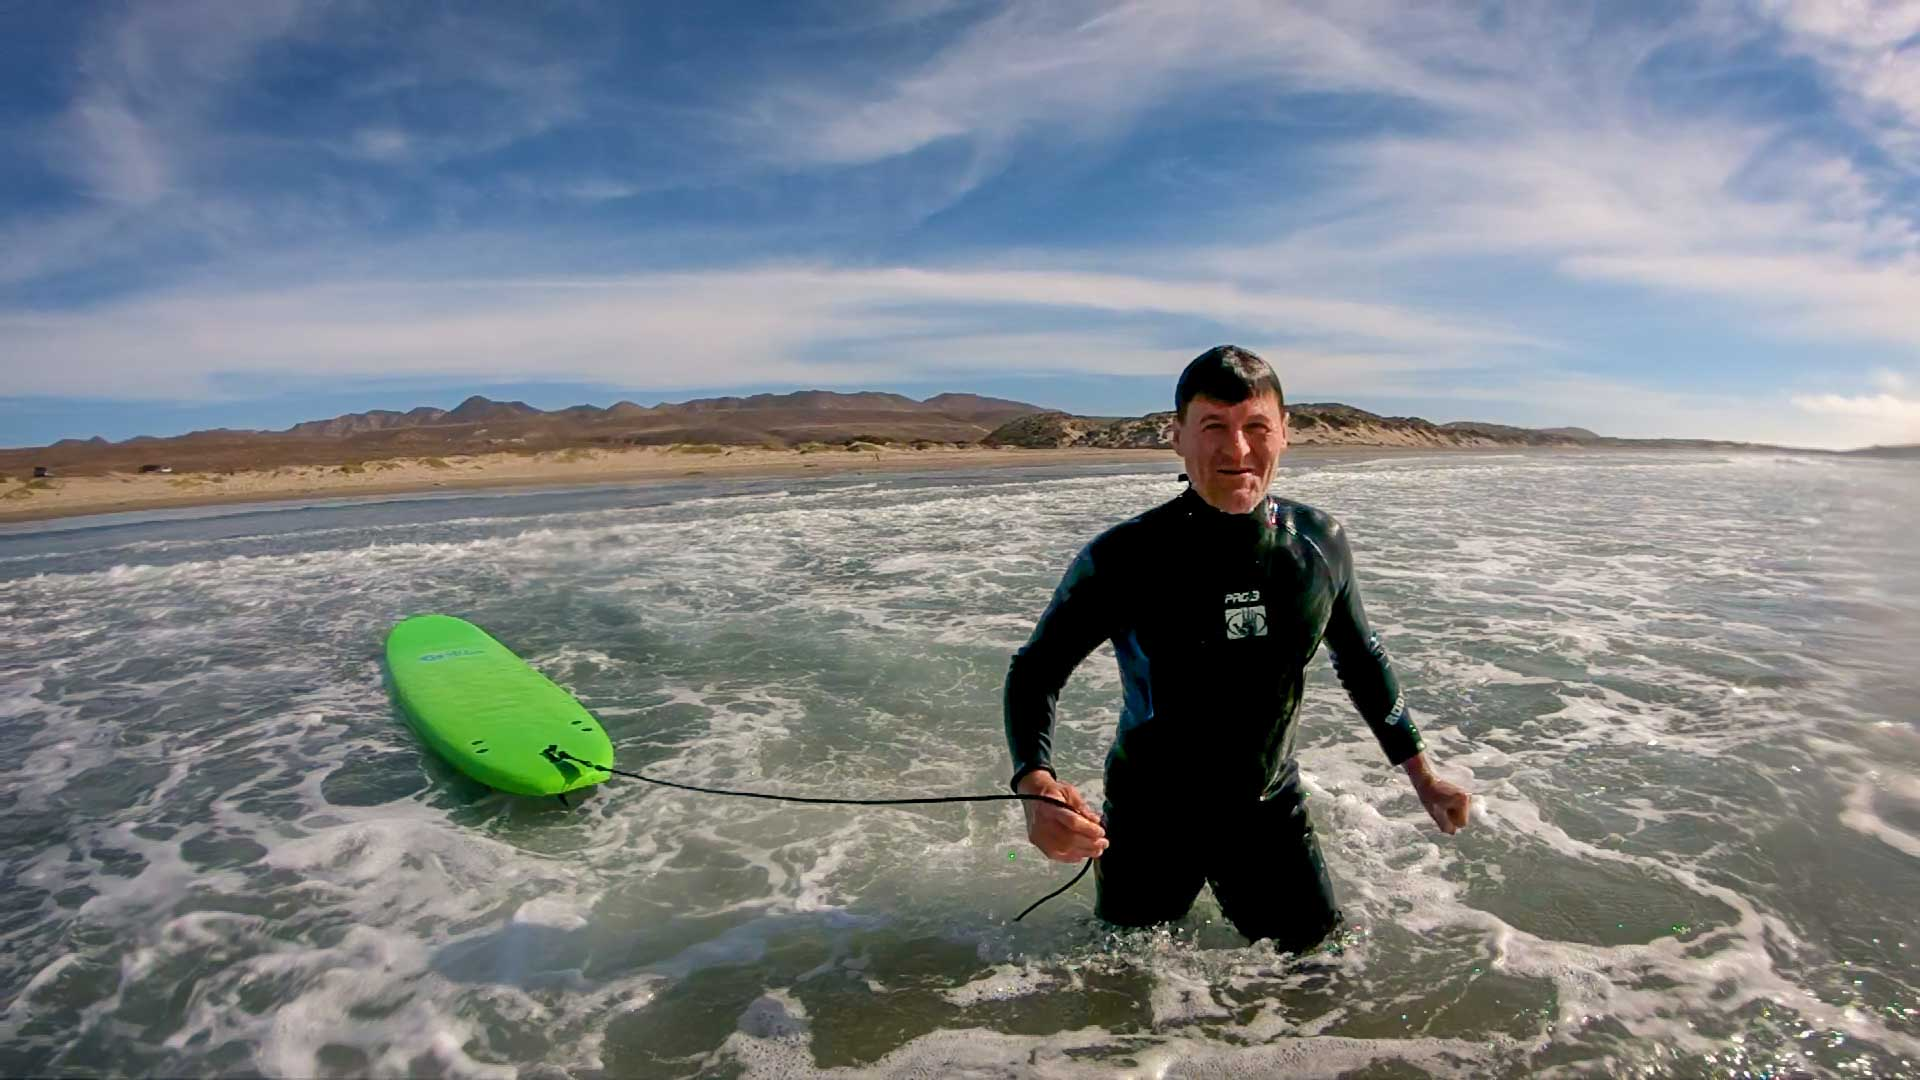 Adventure-in-a-backpack-baja-california-surf-tour-47